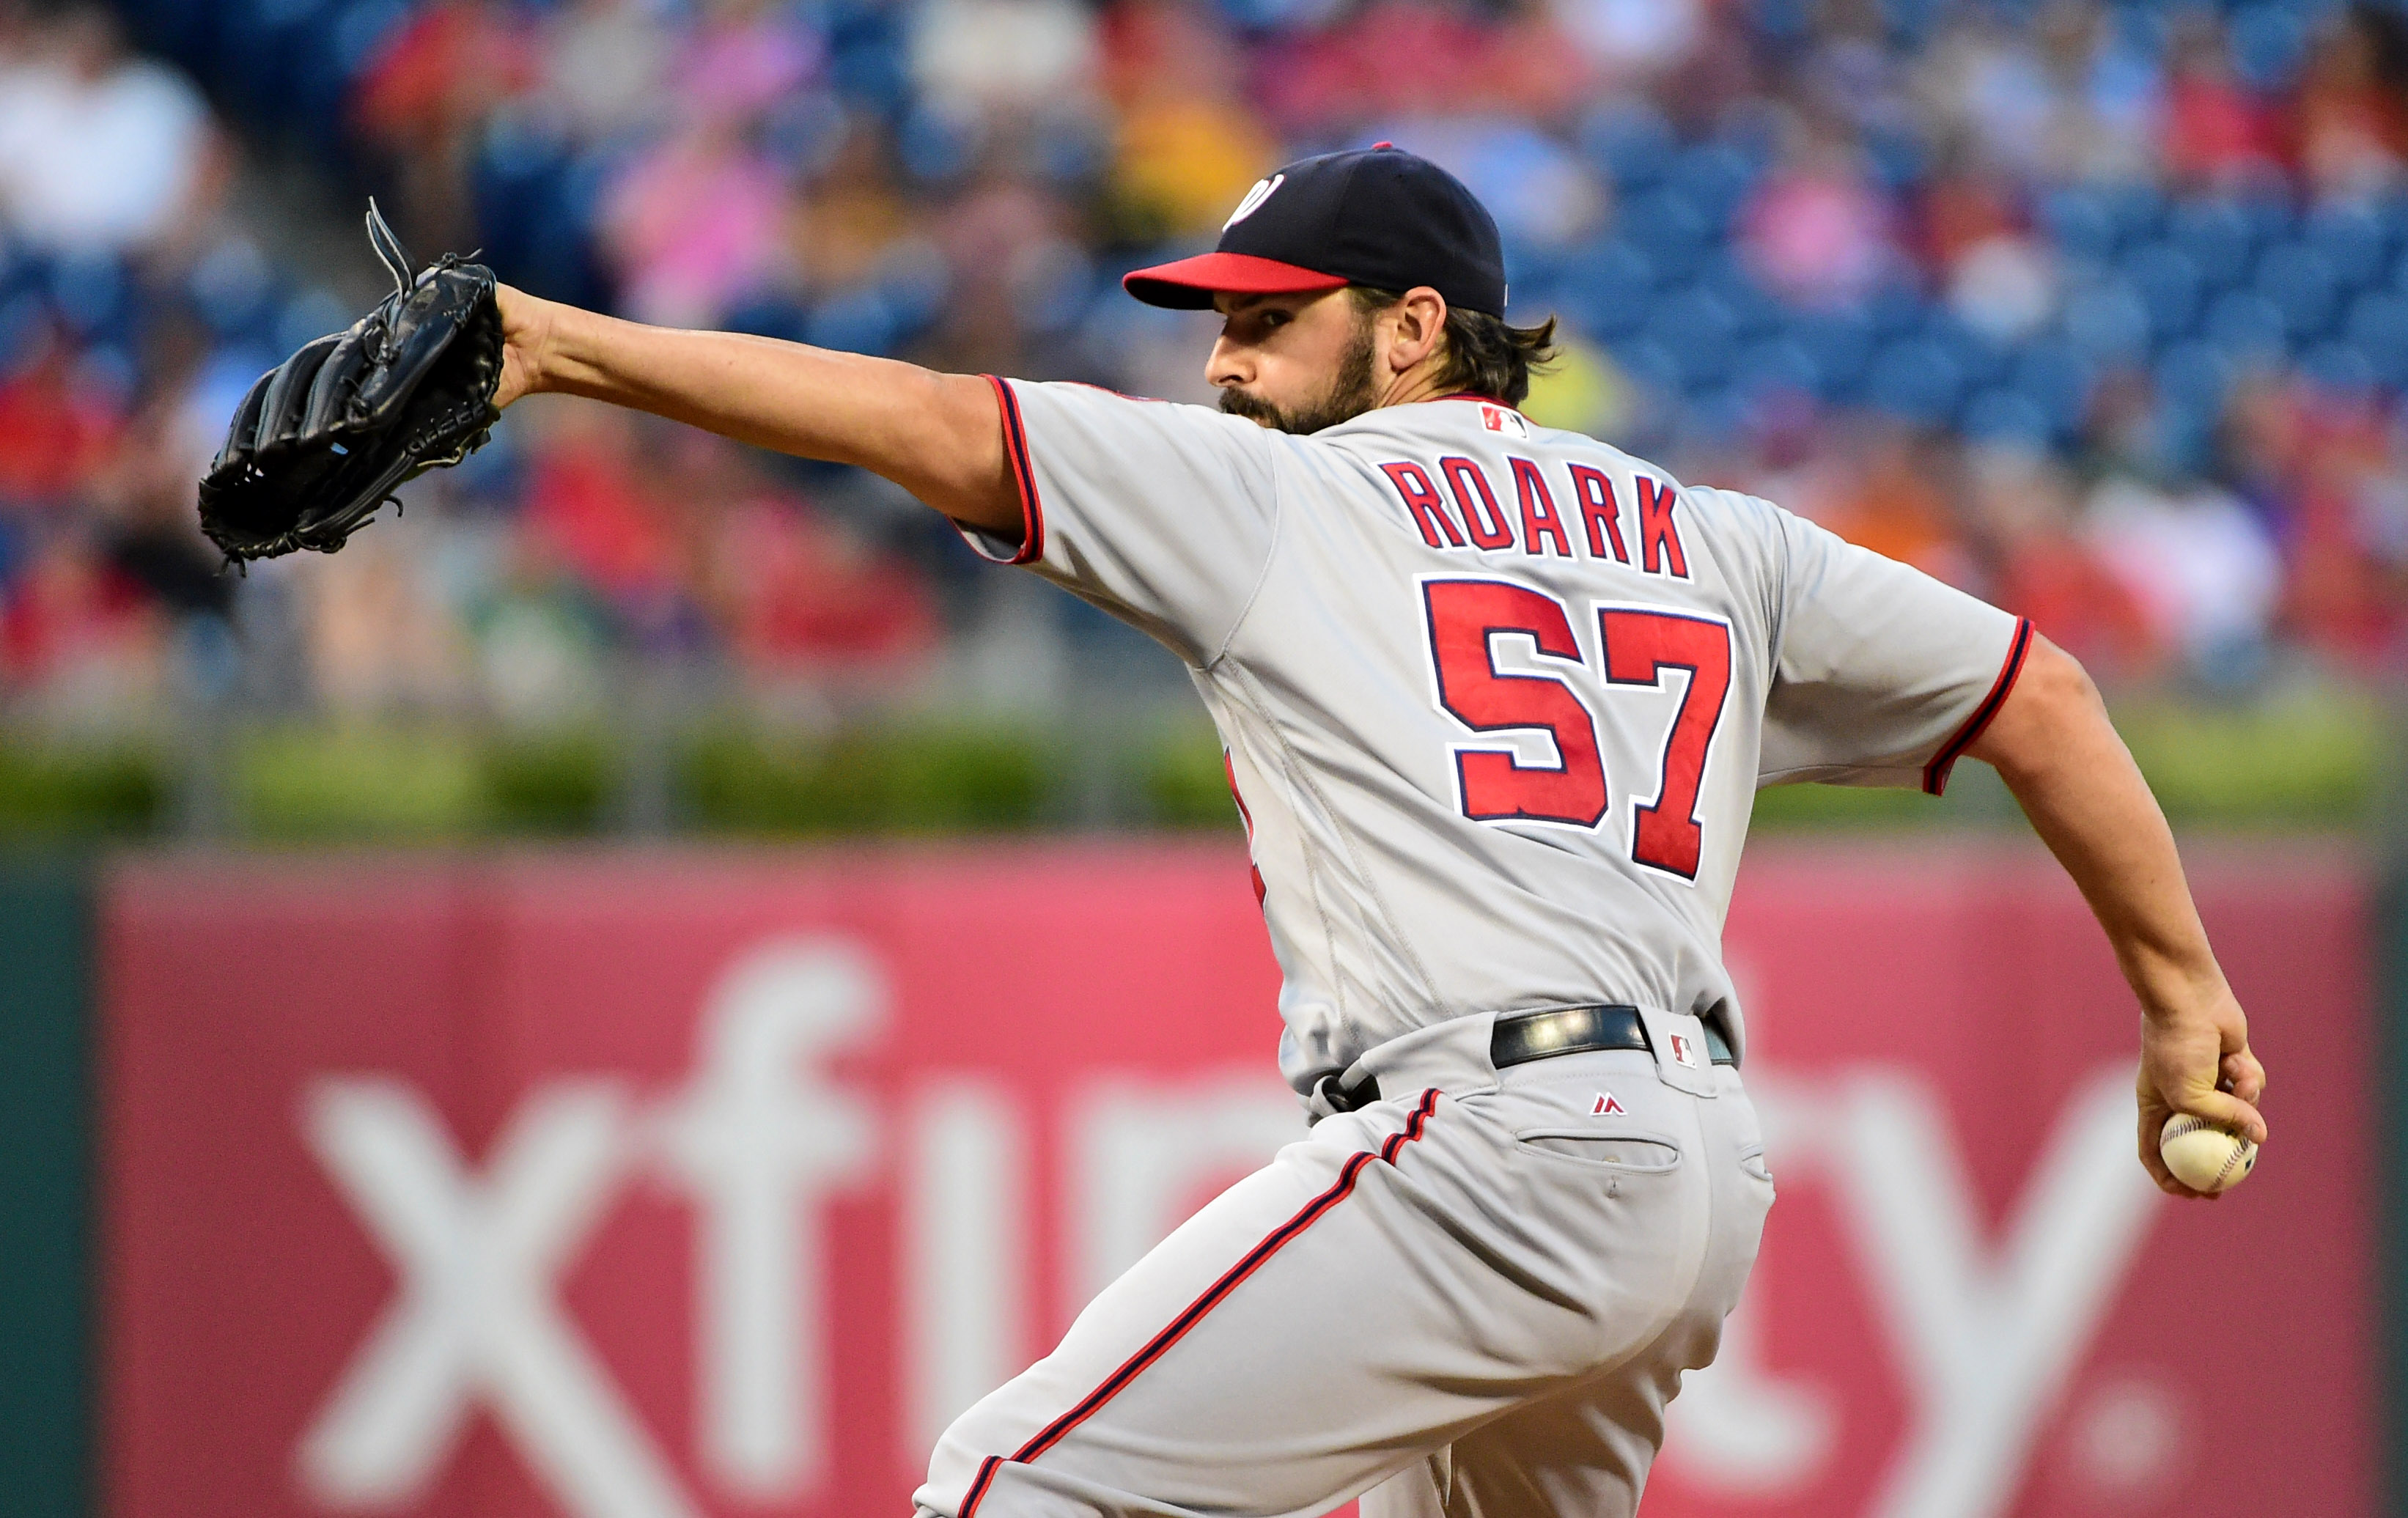 roark single personals Personals pets/animals real  washington nationals starting pitcher tanner roark works in the first inning of a baseball  allowing it to drop for a gift single.